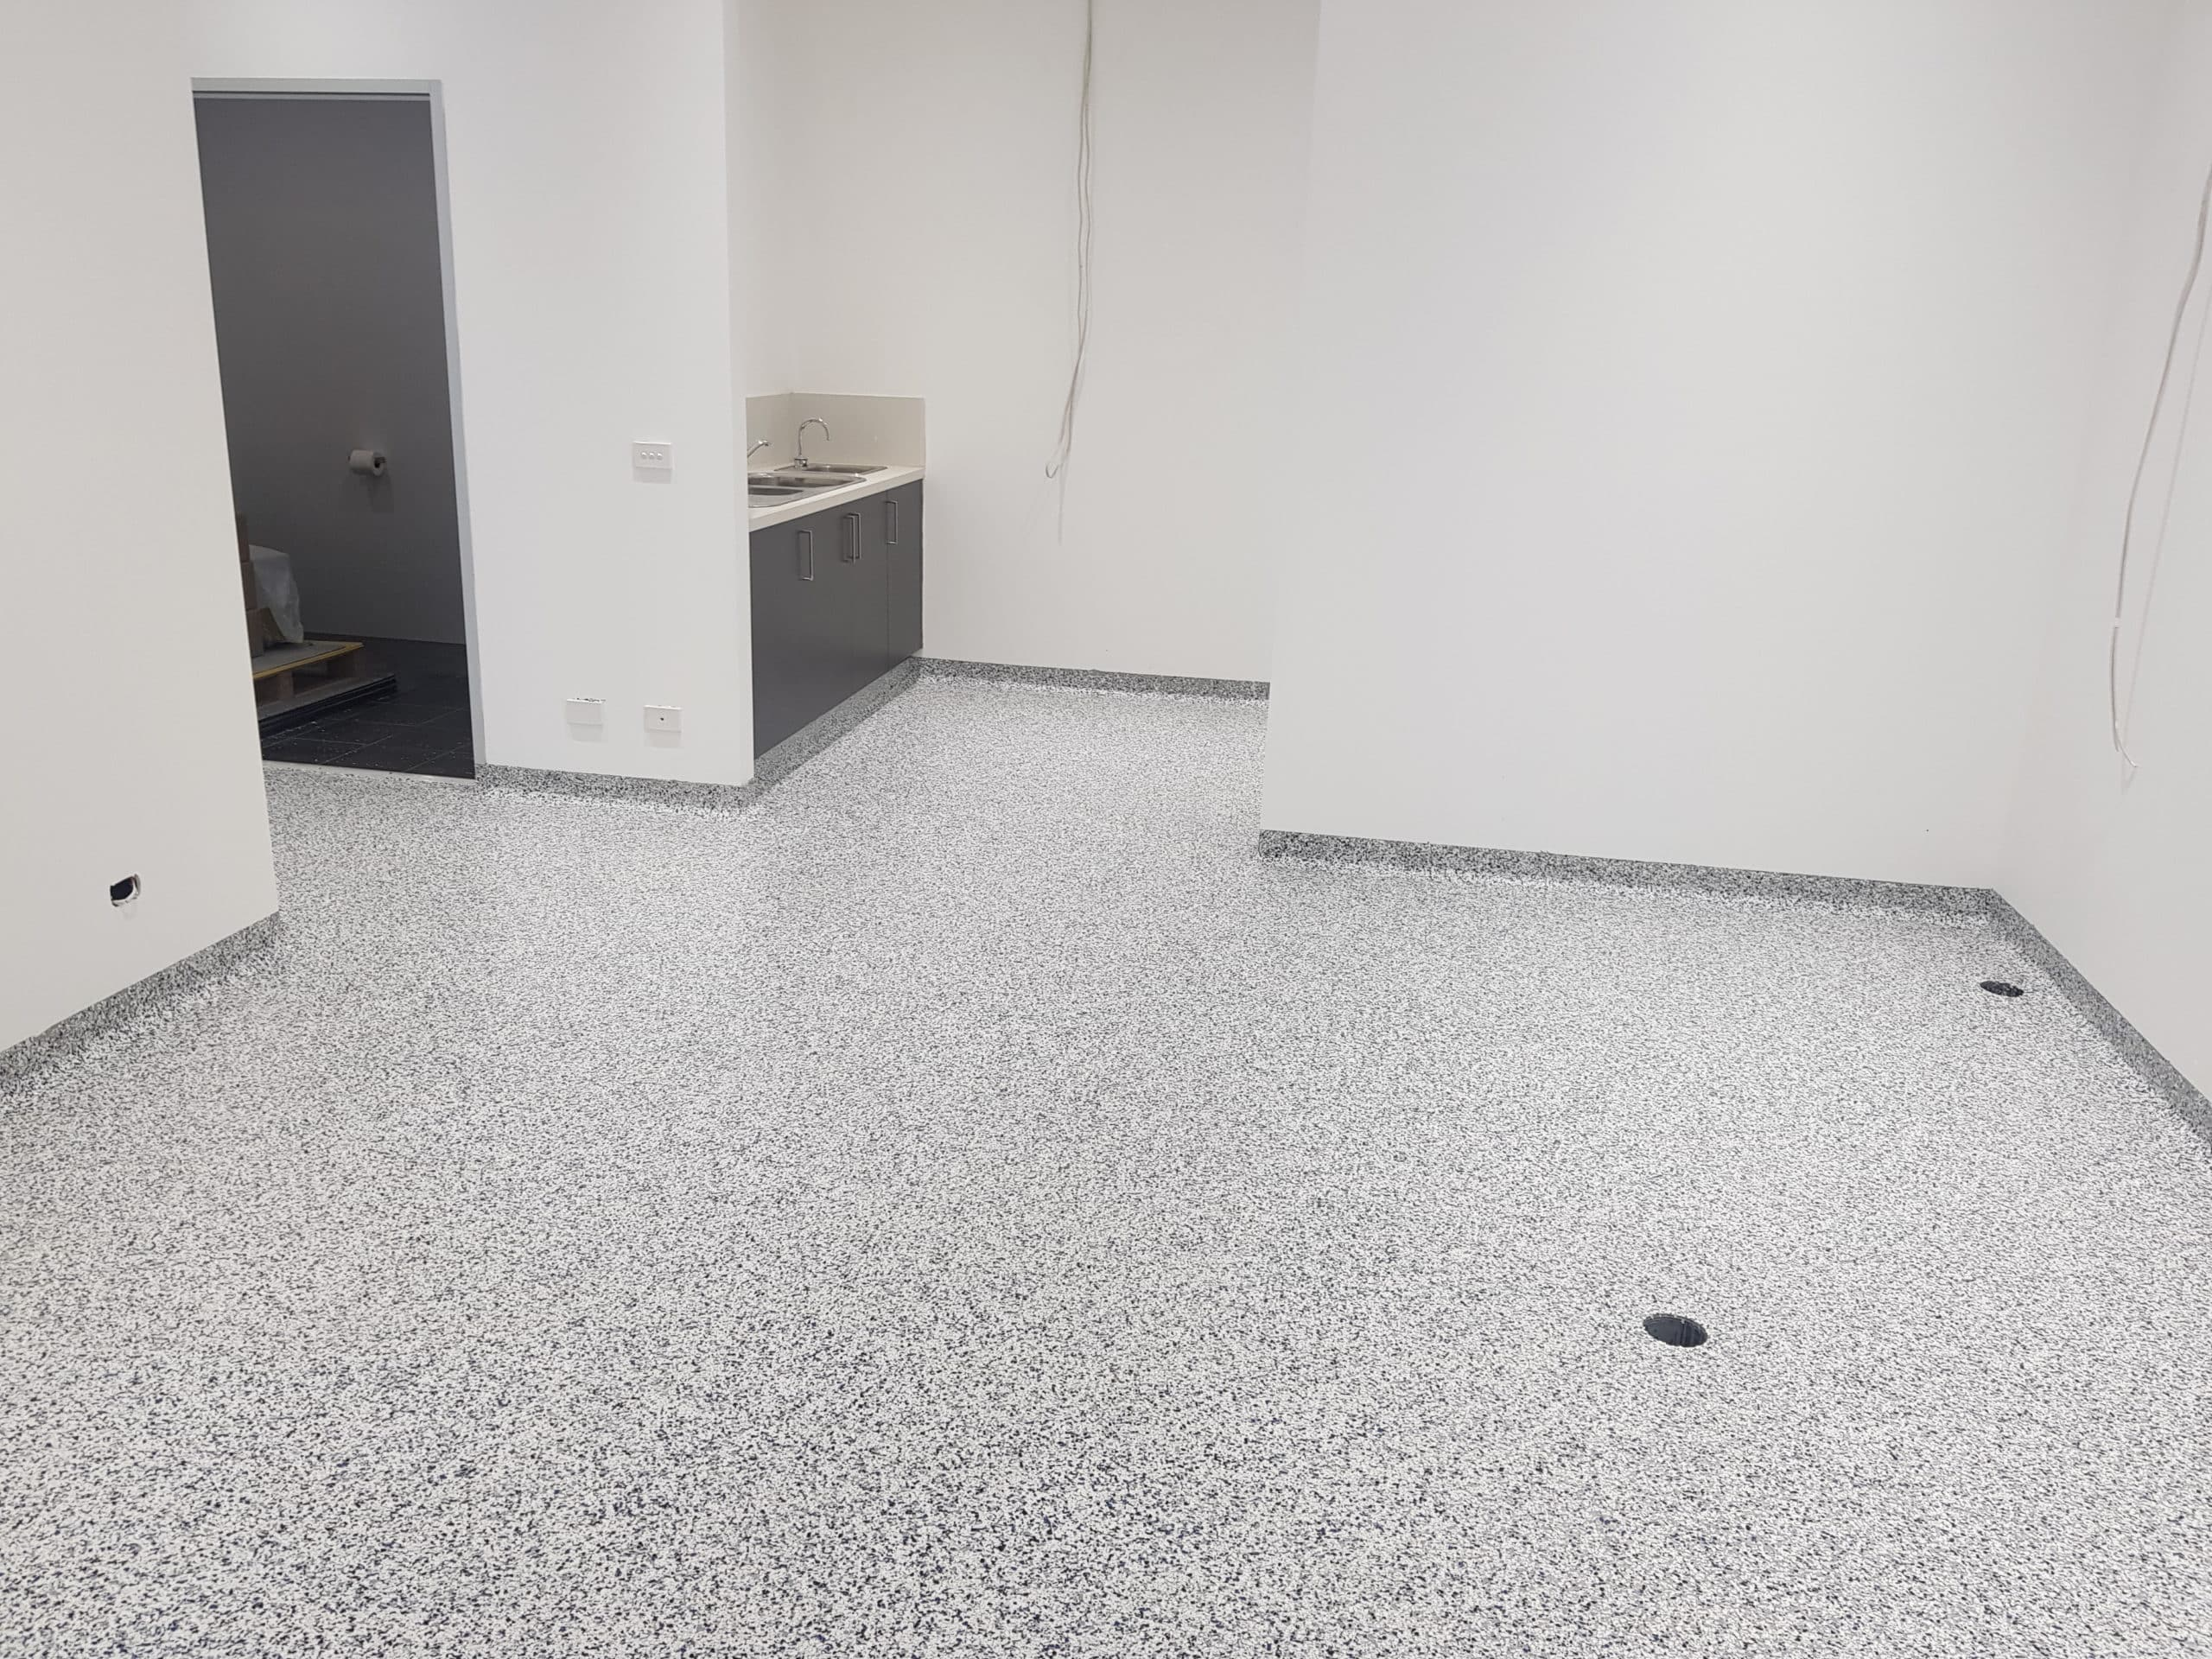 Commercial kitchen gourmet food packing flooring 3